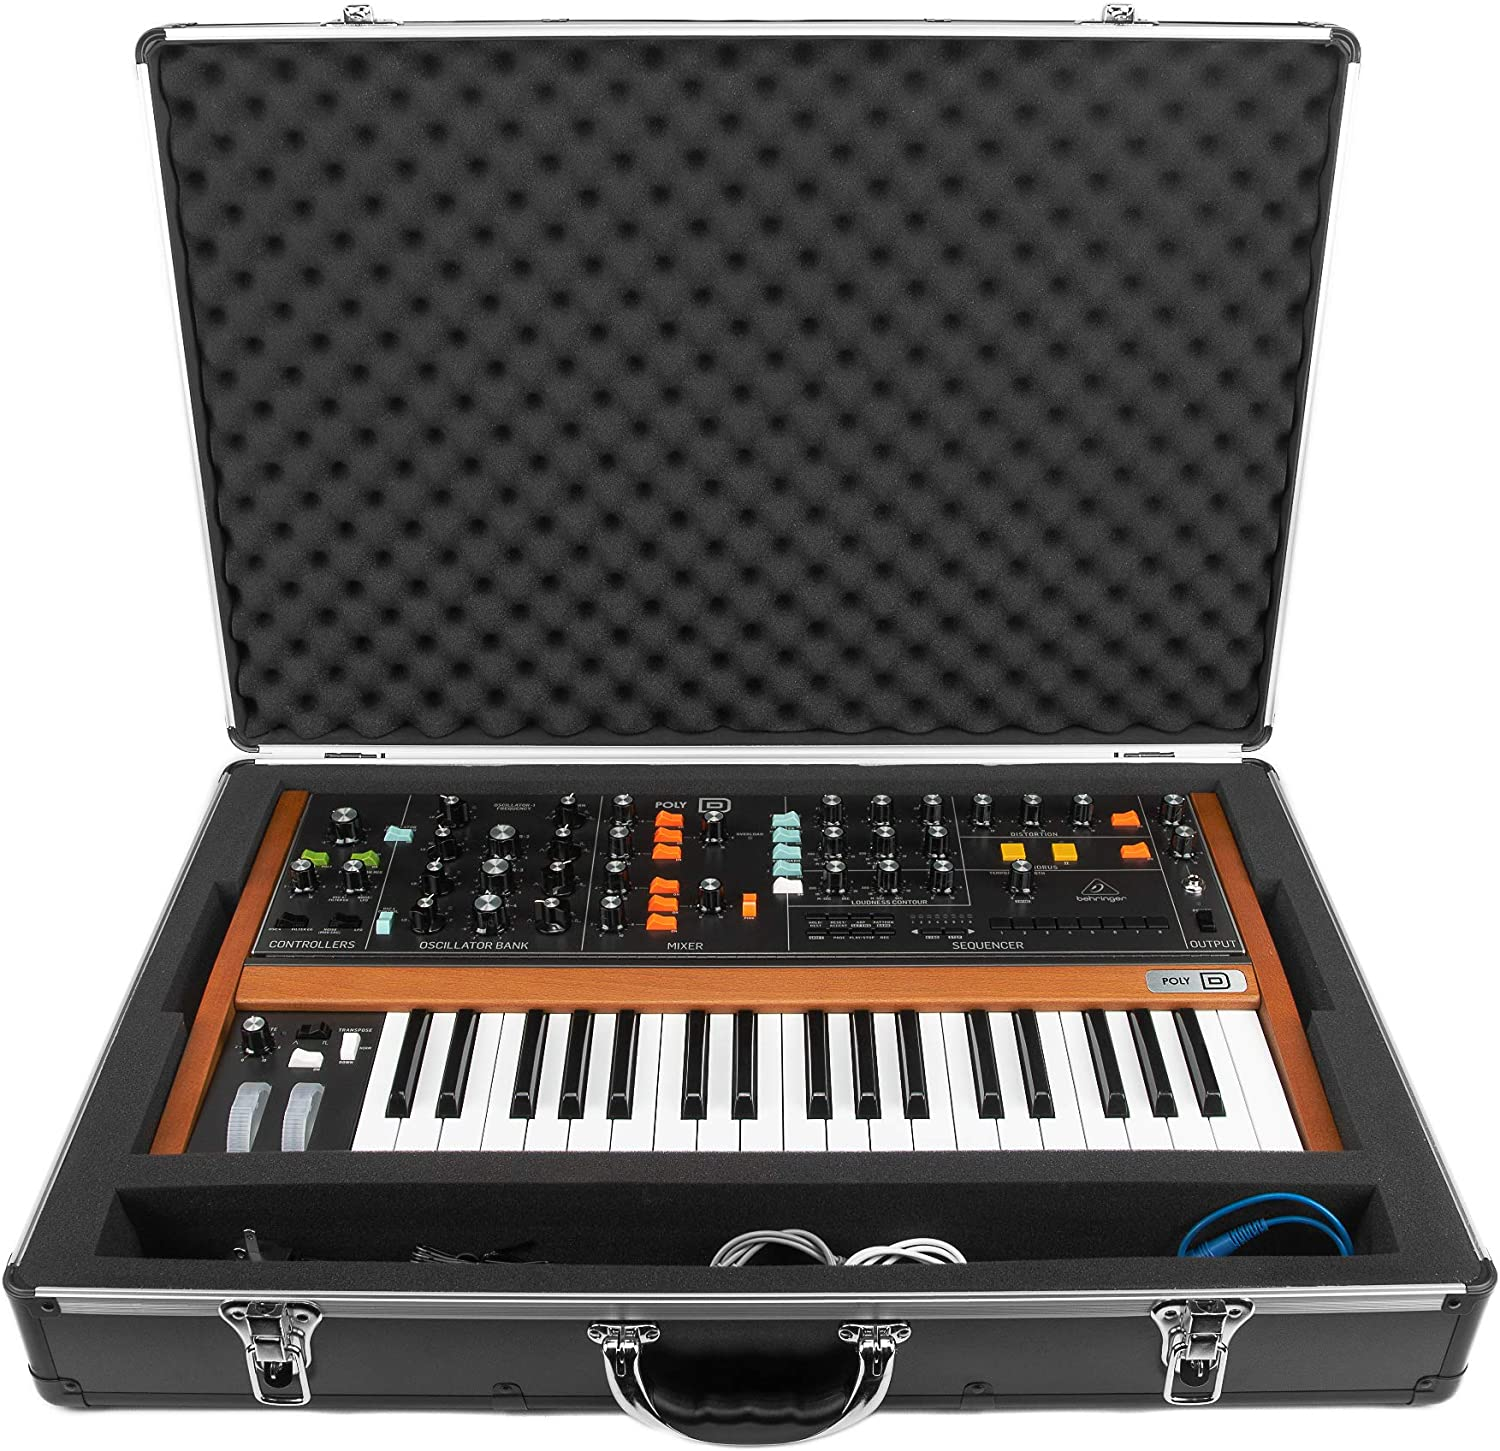 Amazon Com Analog Cases Unison Case For The Behringer Poly D Musical Instruments The 1970s spawned the first truly portable analog synthesizer, and while it was quickly with all the features of the original and then some, the behringer poly d lets you conjure up virtually any. amazon com analog cases unison case